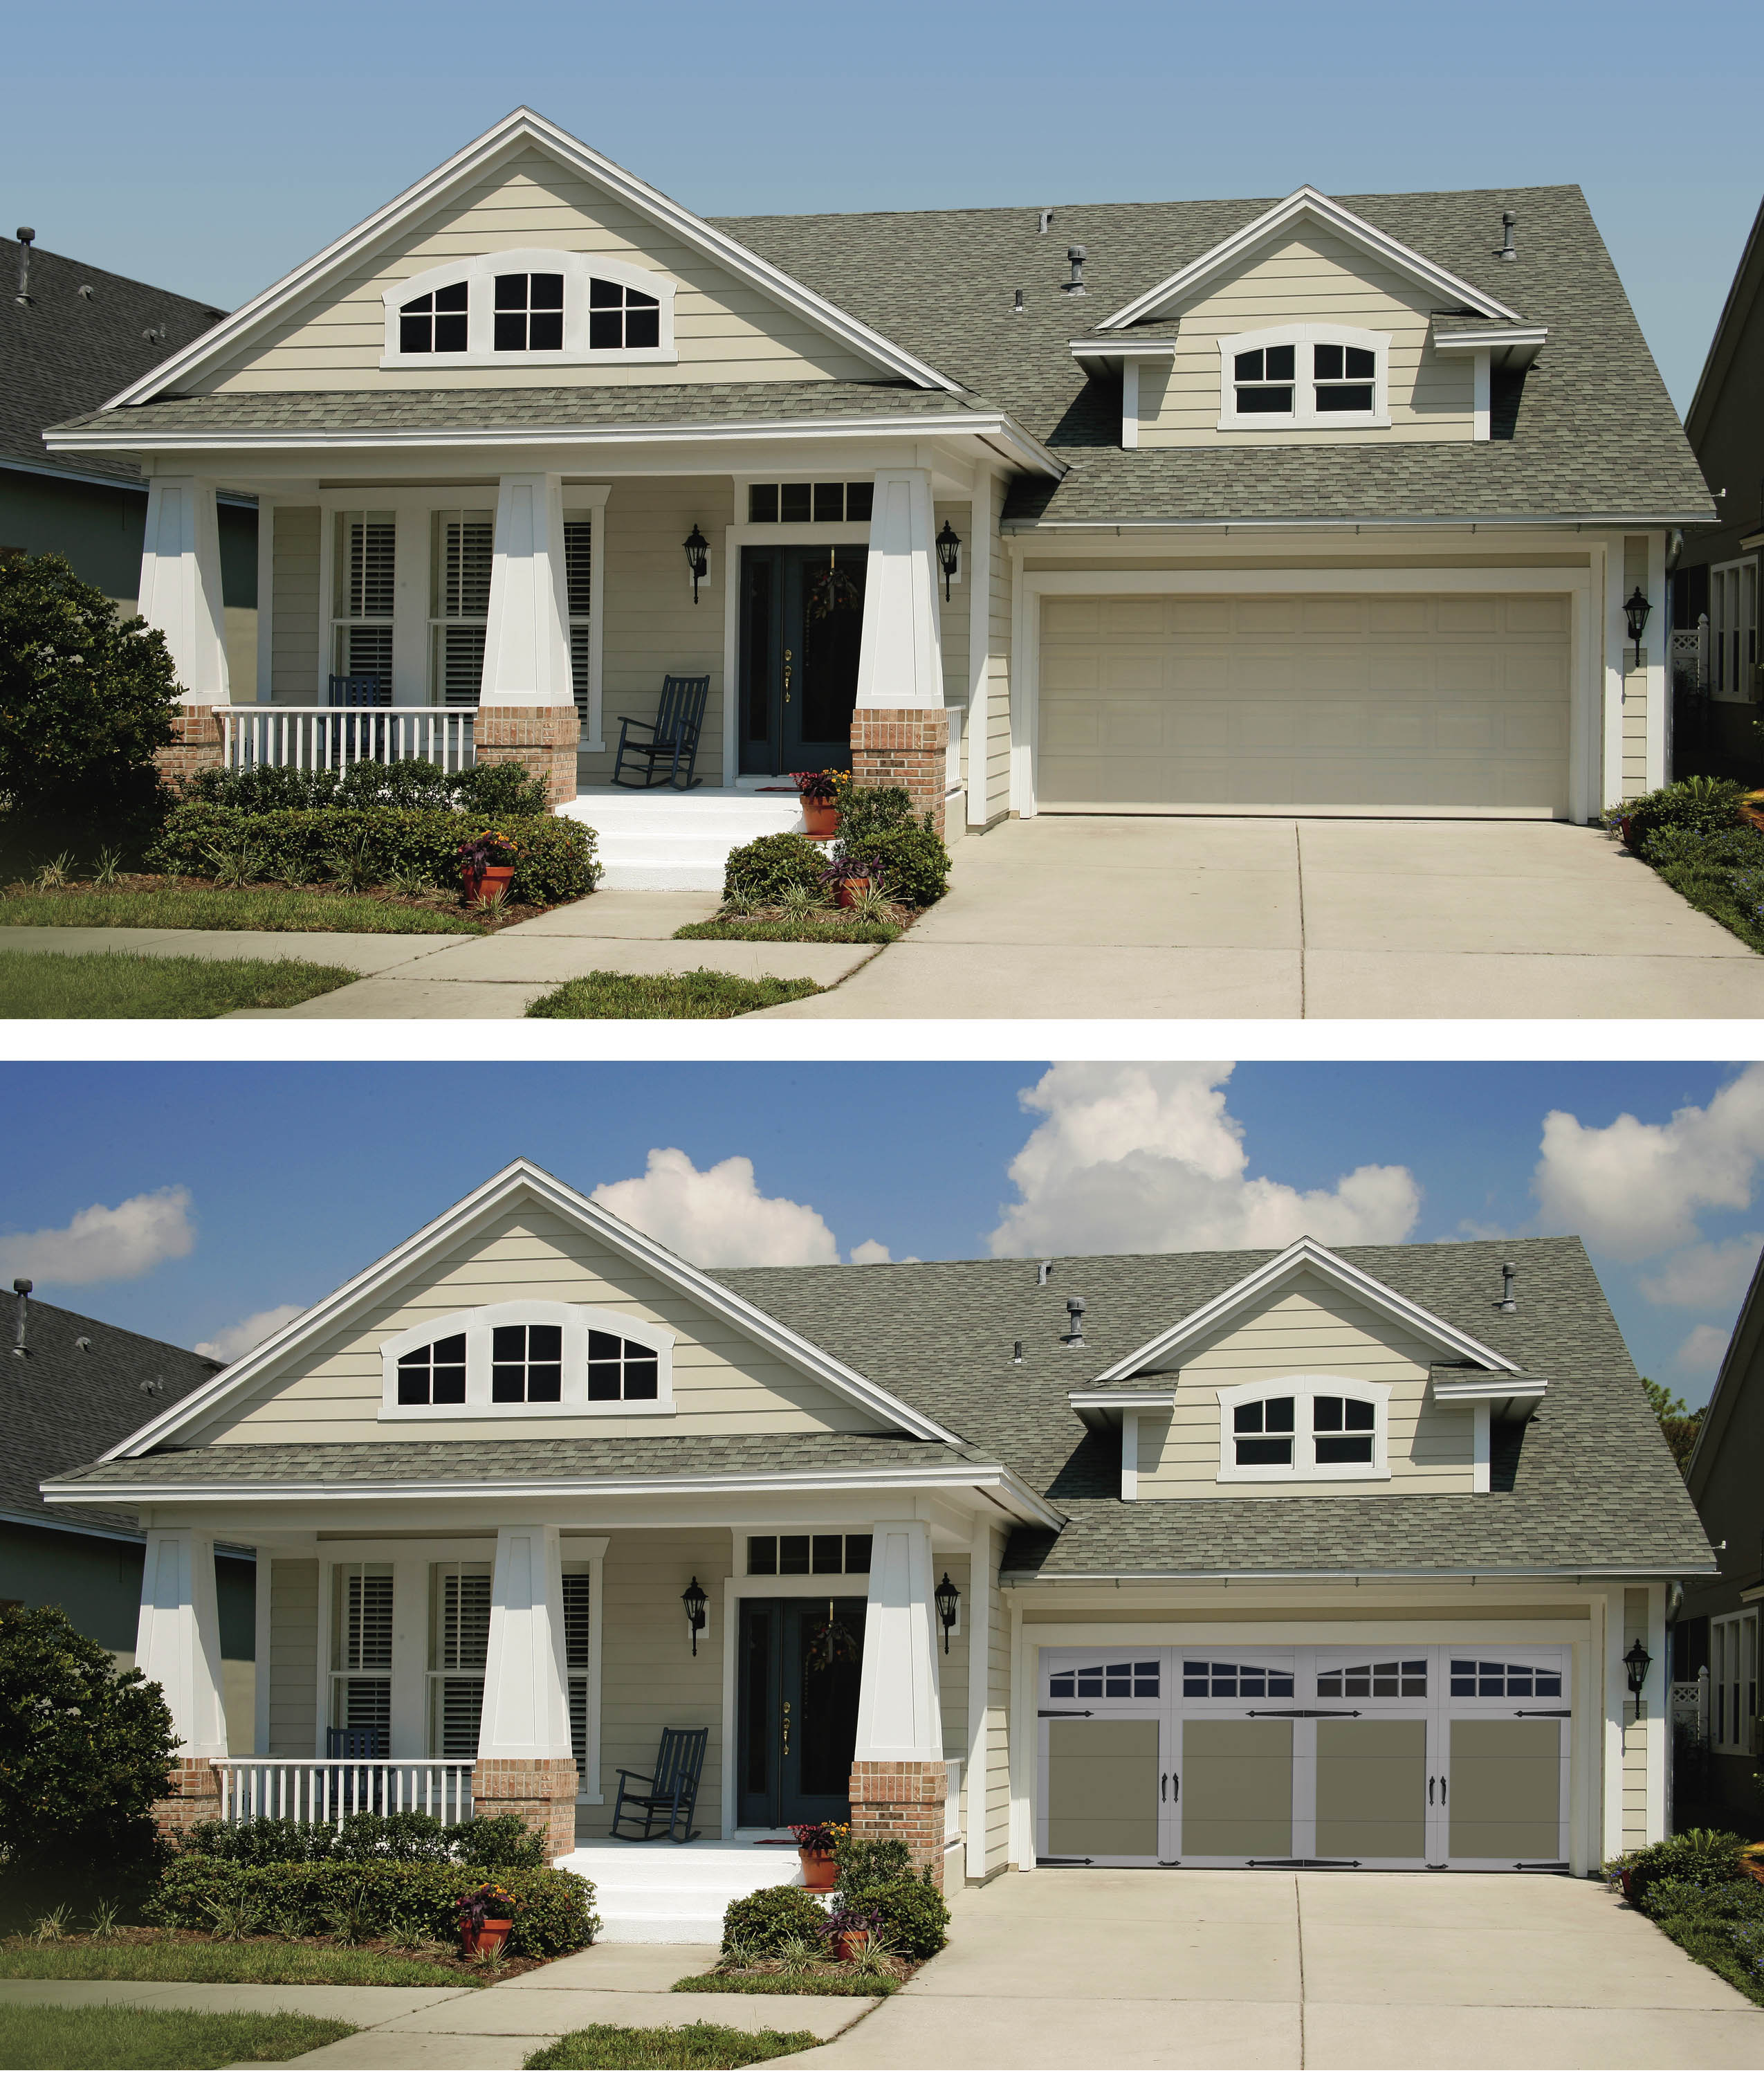 Residential Garage Door Company In Forth Worth Texas